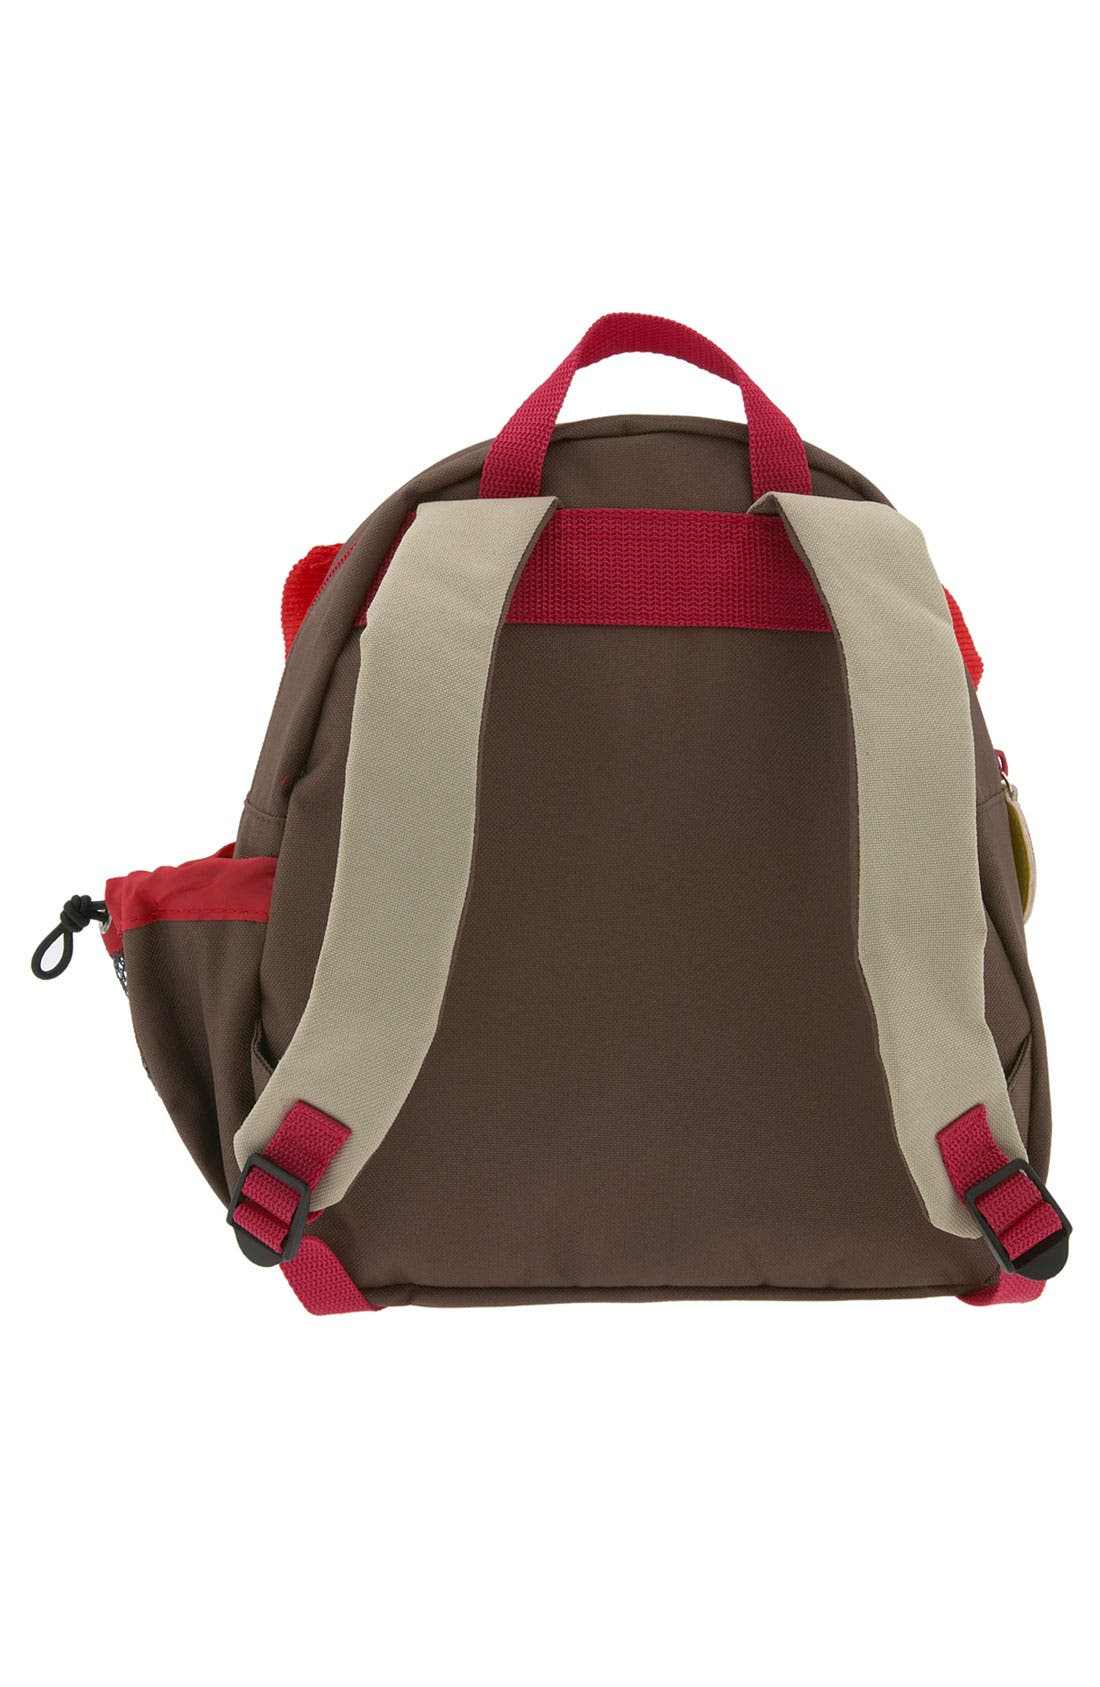 Zoo Pack Backpack,                             Alternate thumbnail 2, color,                             Brown